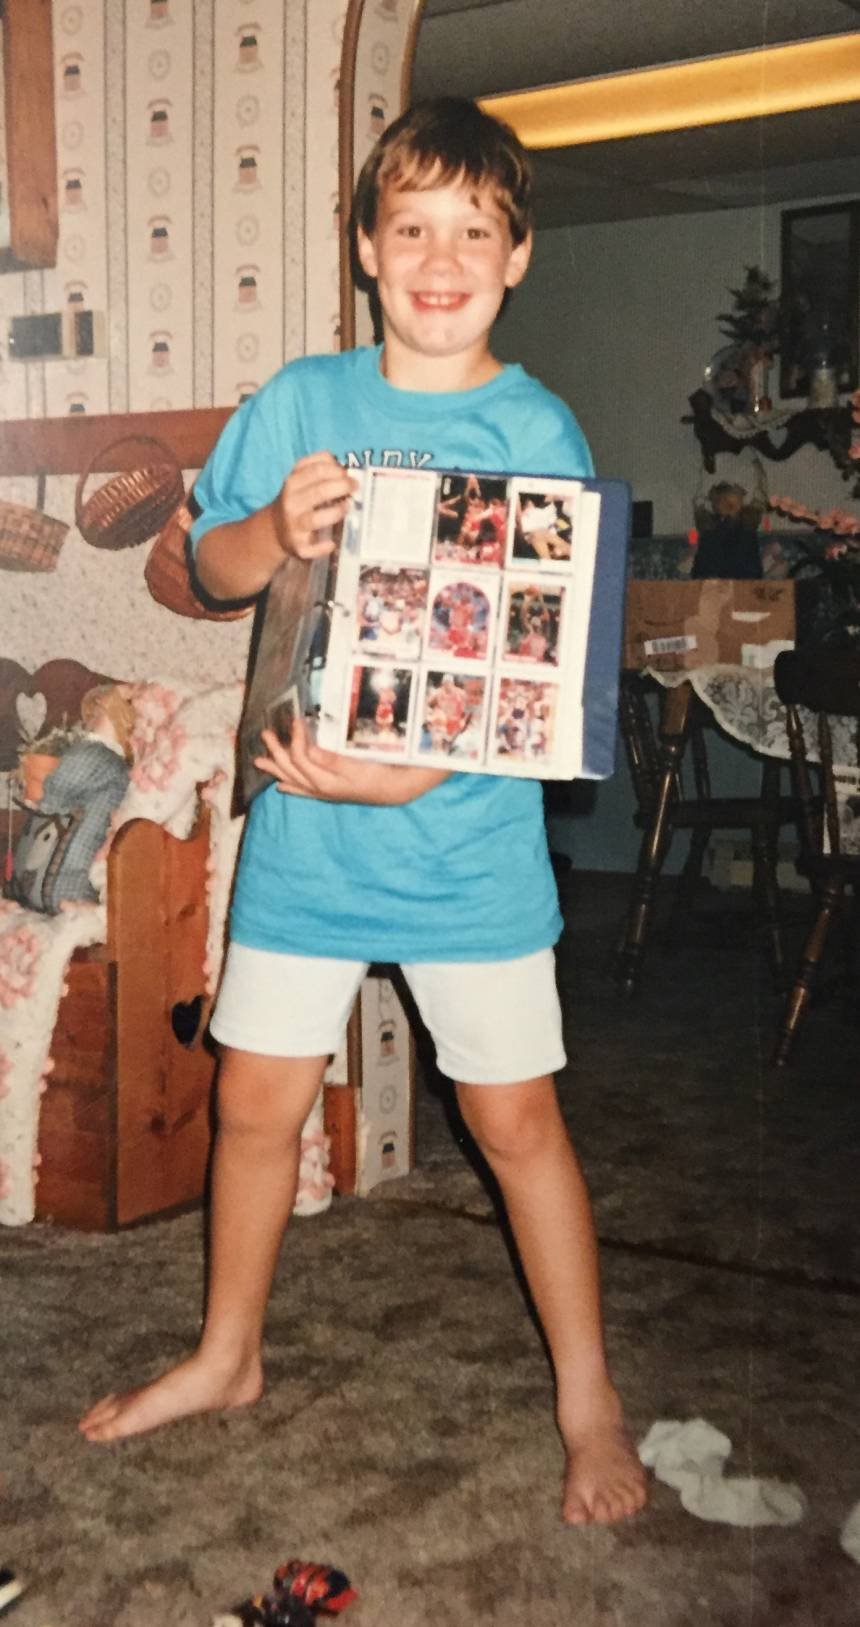 A childhood Logan displaying his early card collection.